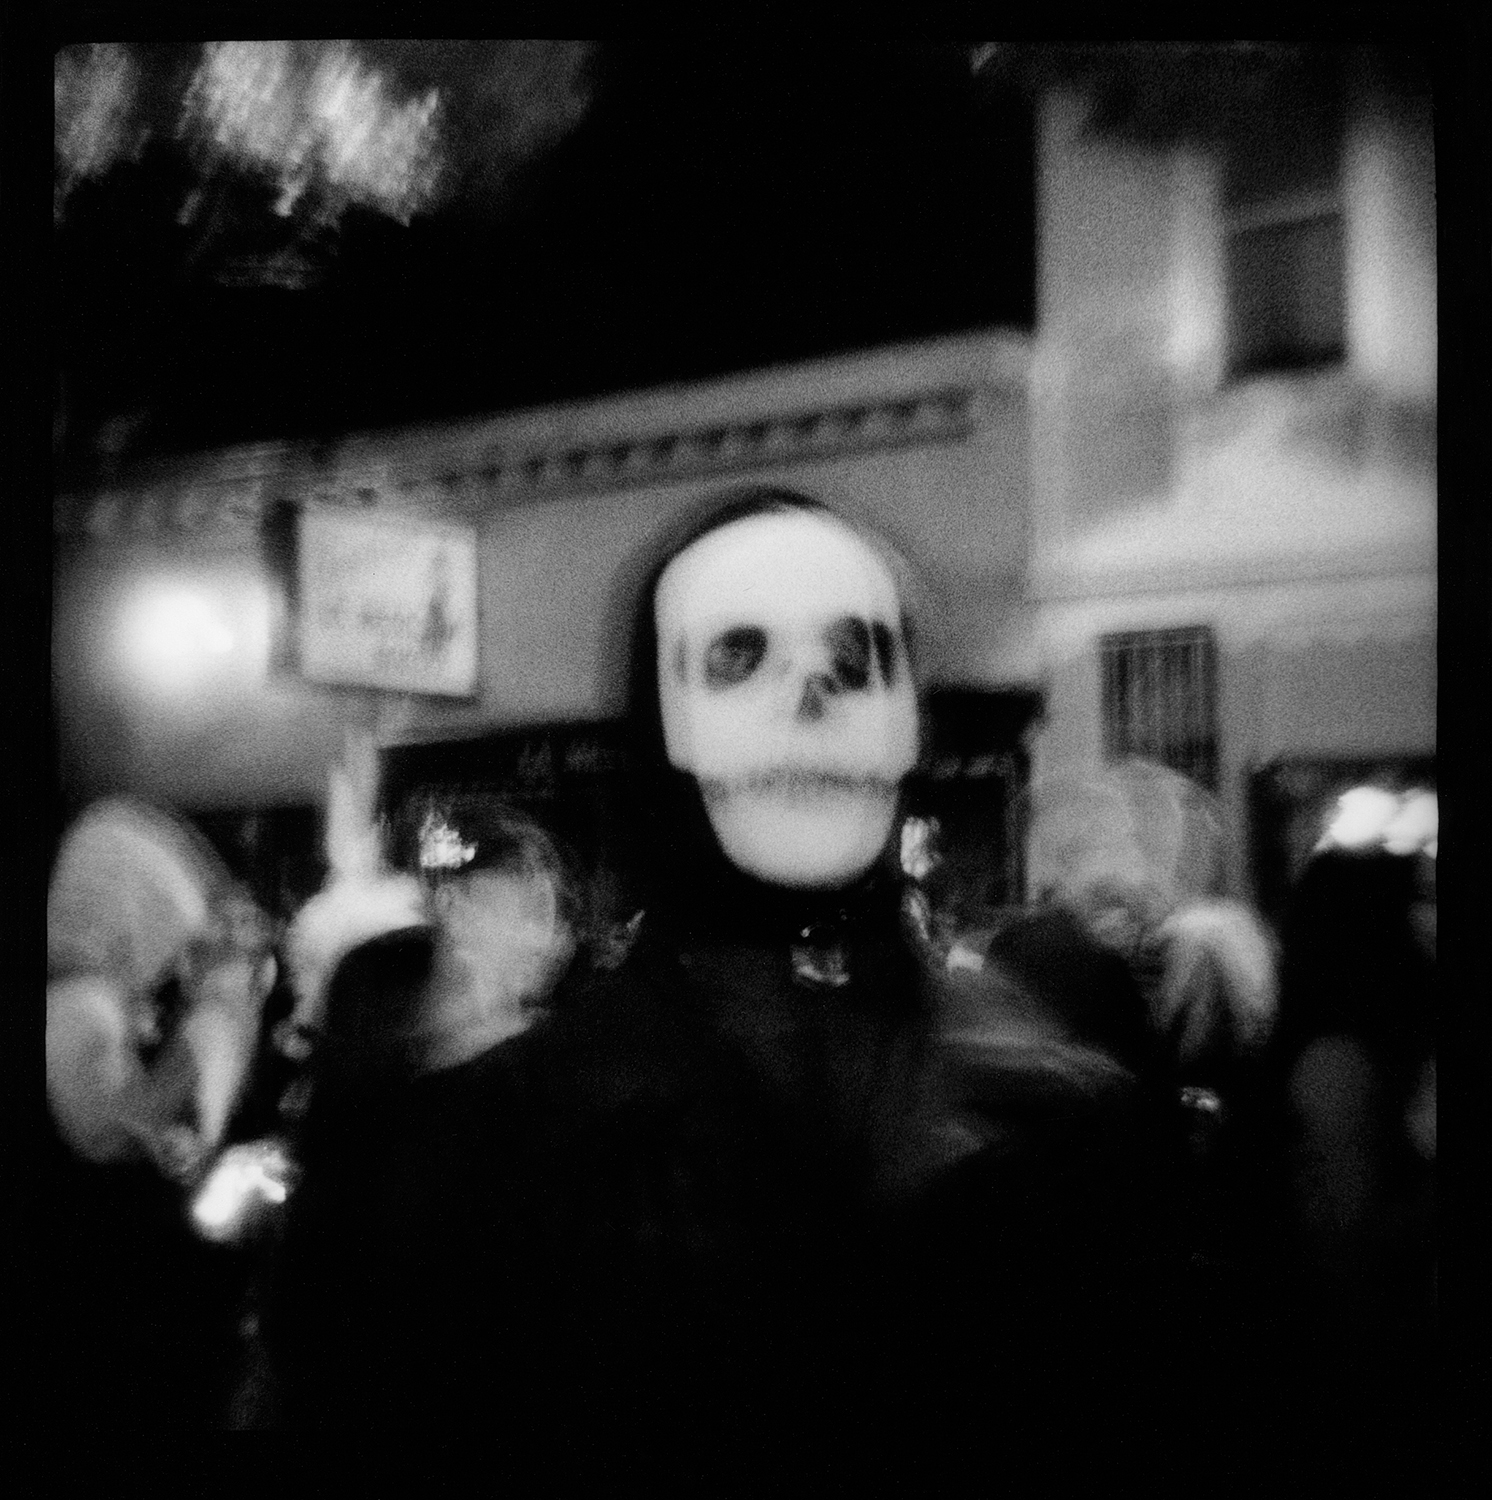 38_DayoftheDead_2013_02_03.jpg